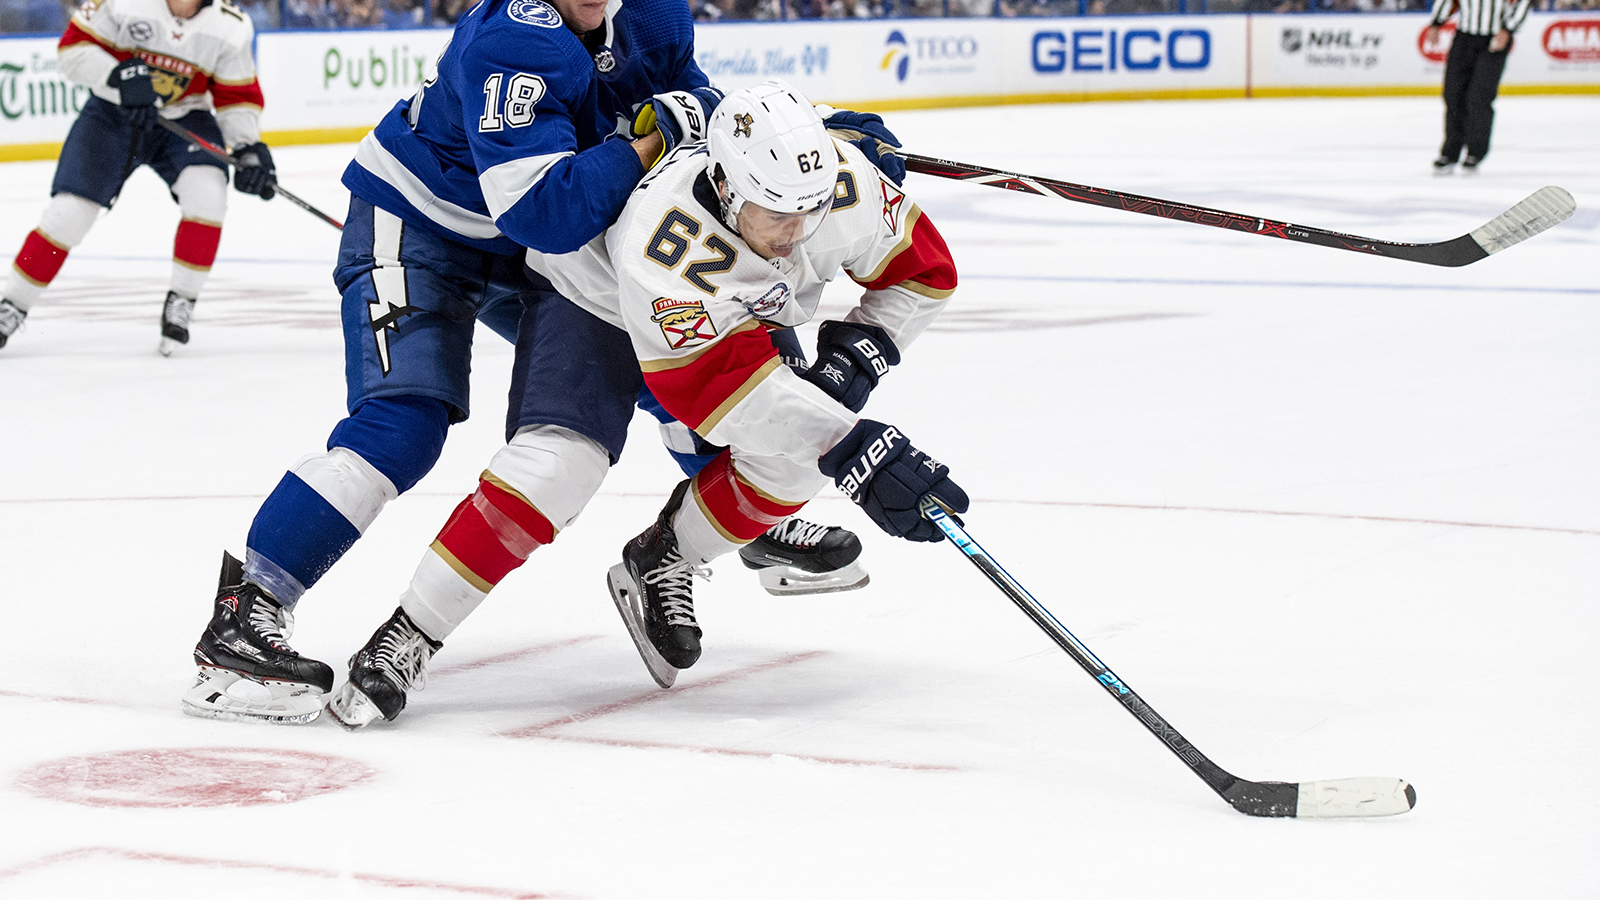 Panthers recall forward Denis Malgin from AHL Springfield